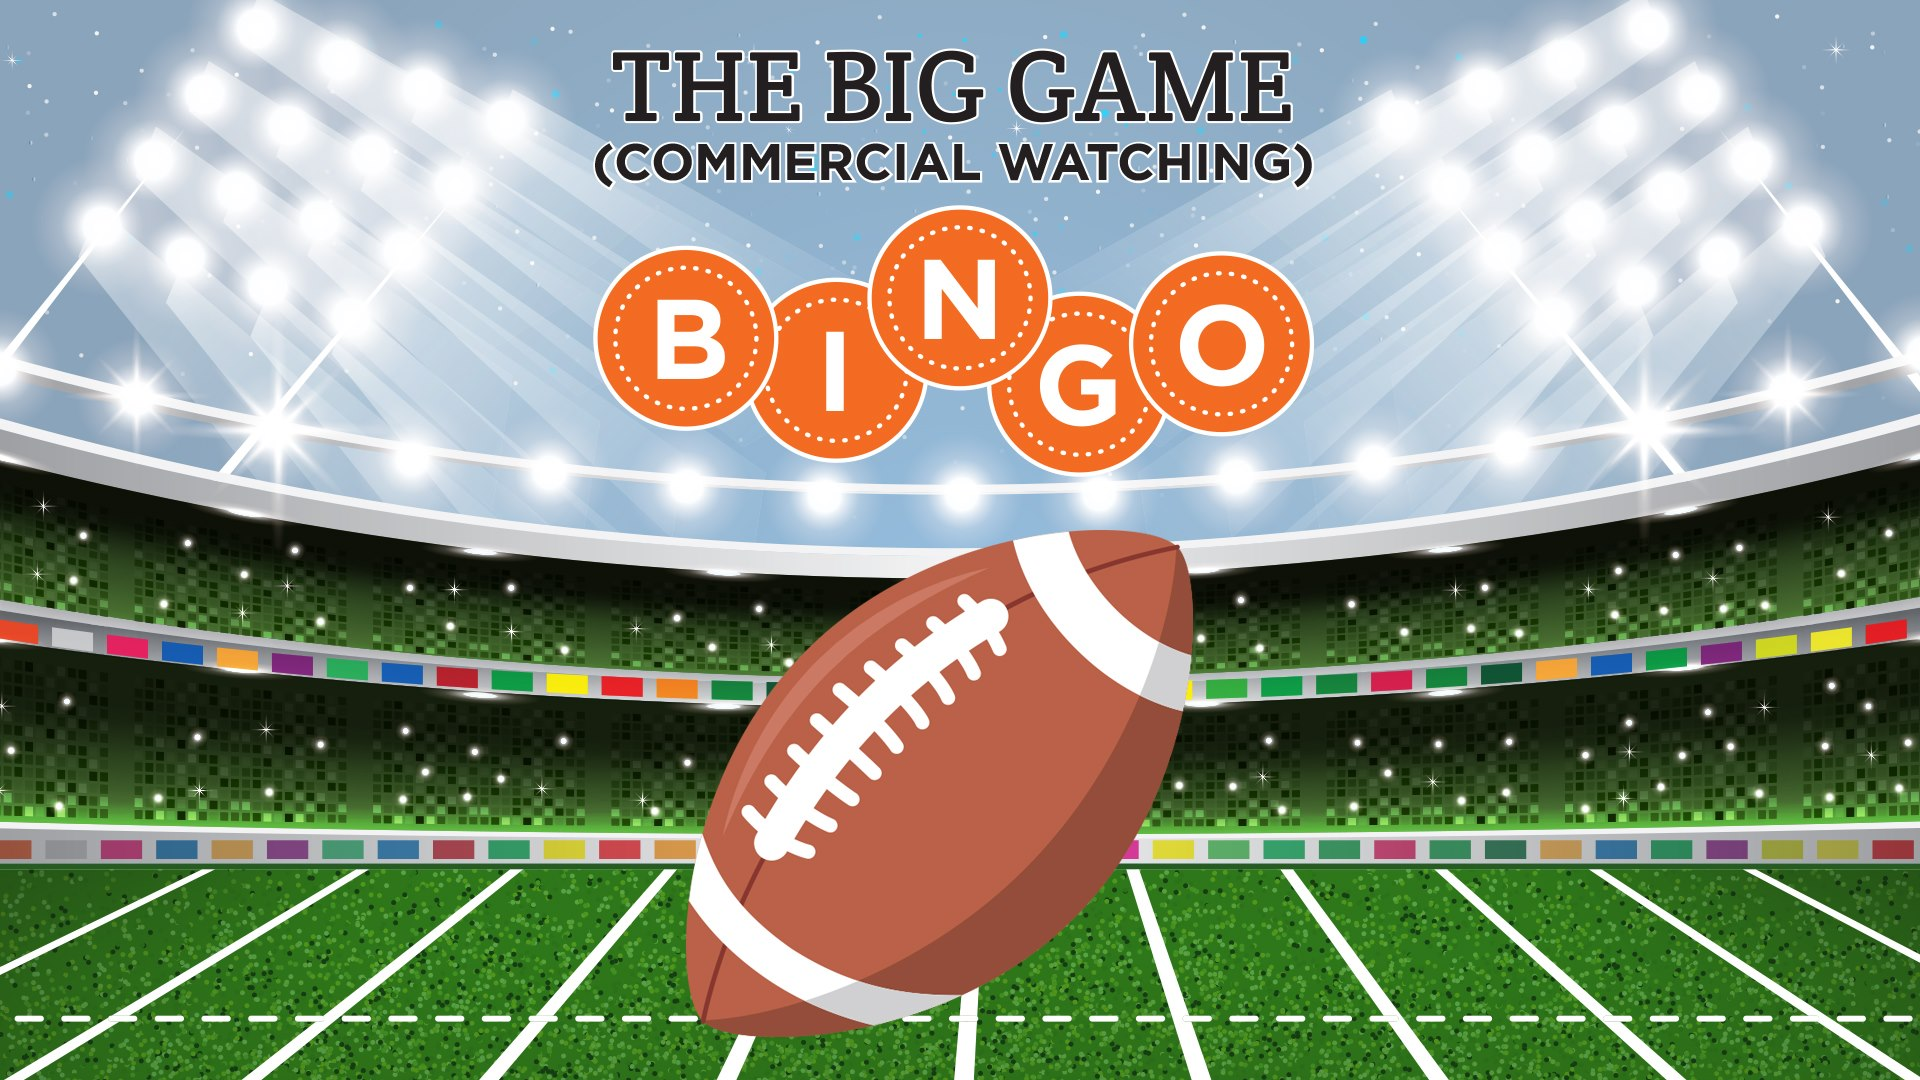 The Big Game + Commercial Watching BINGO